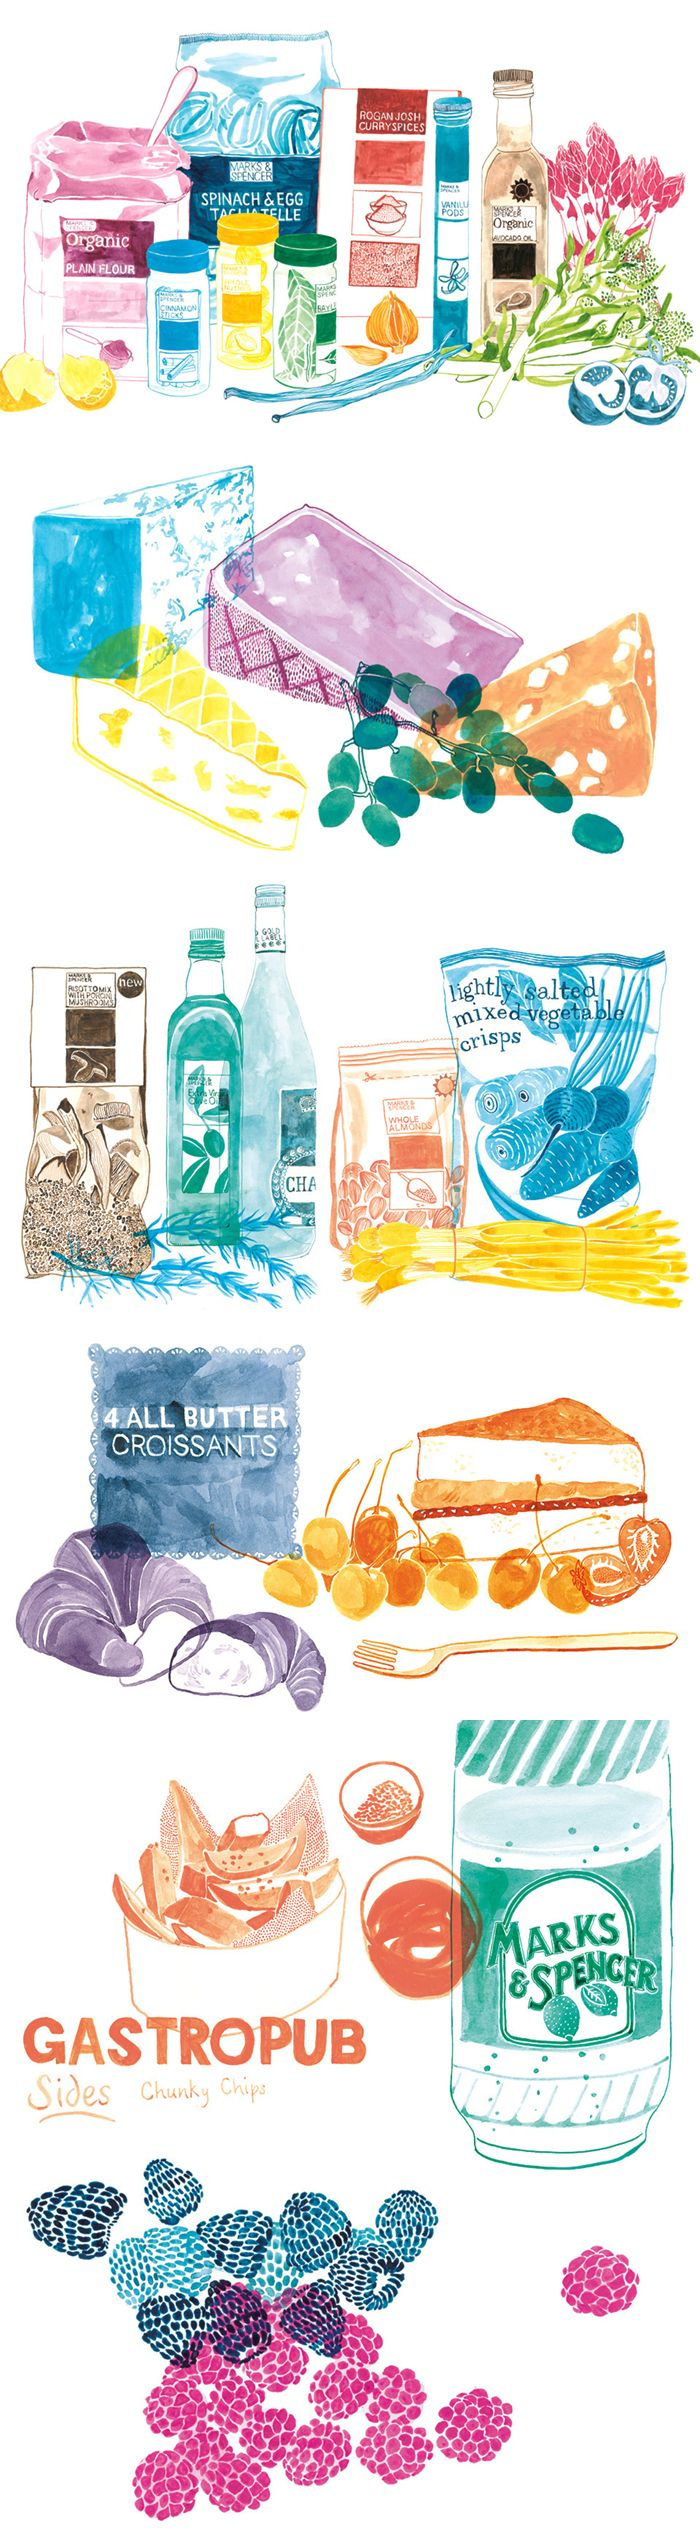 Wall illustrations for Marks and Spencer by Emily Robertson